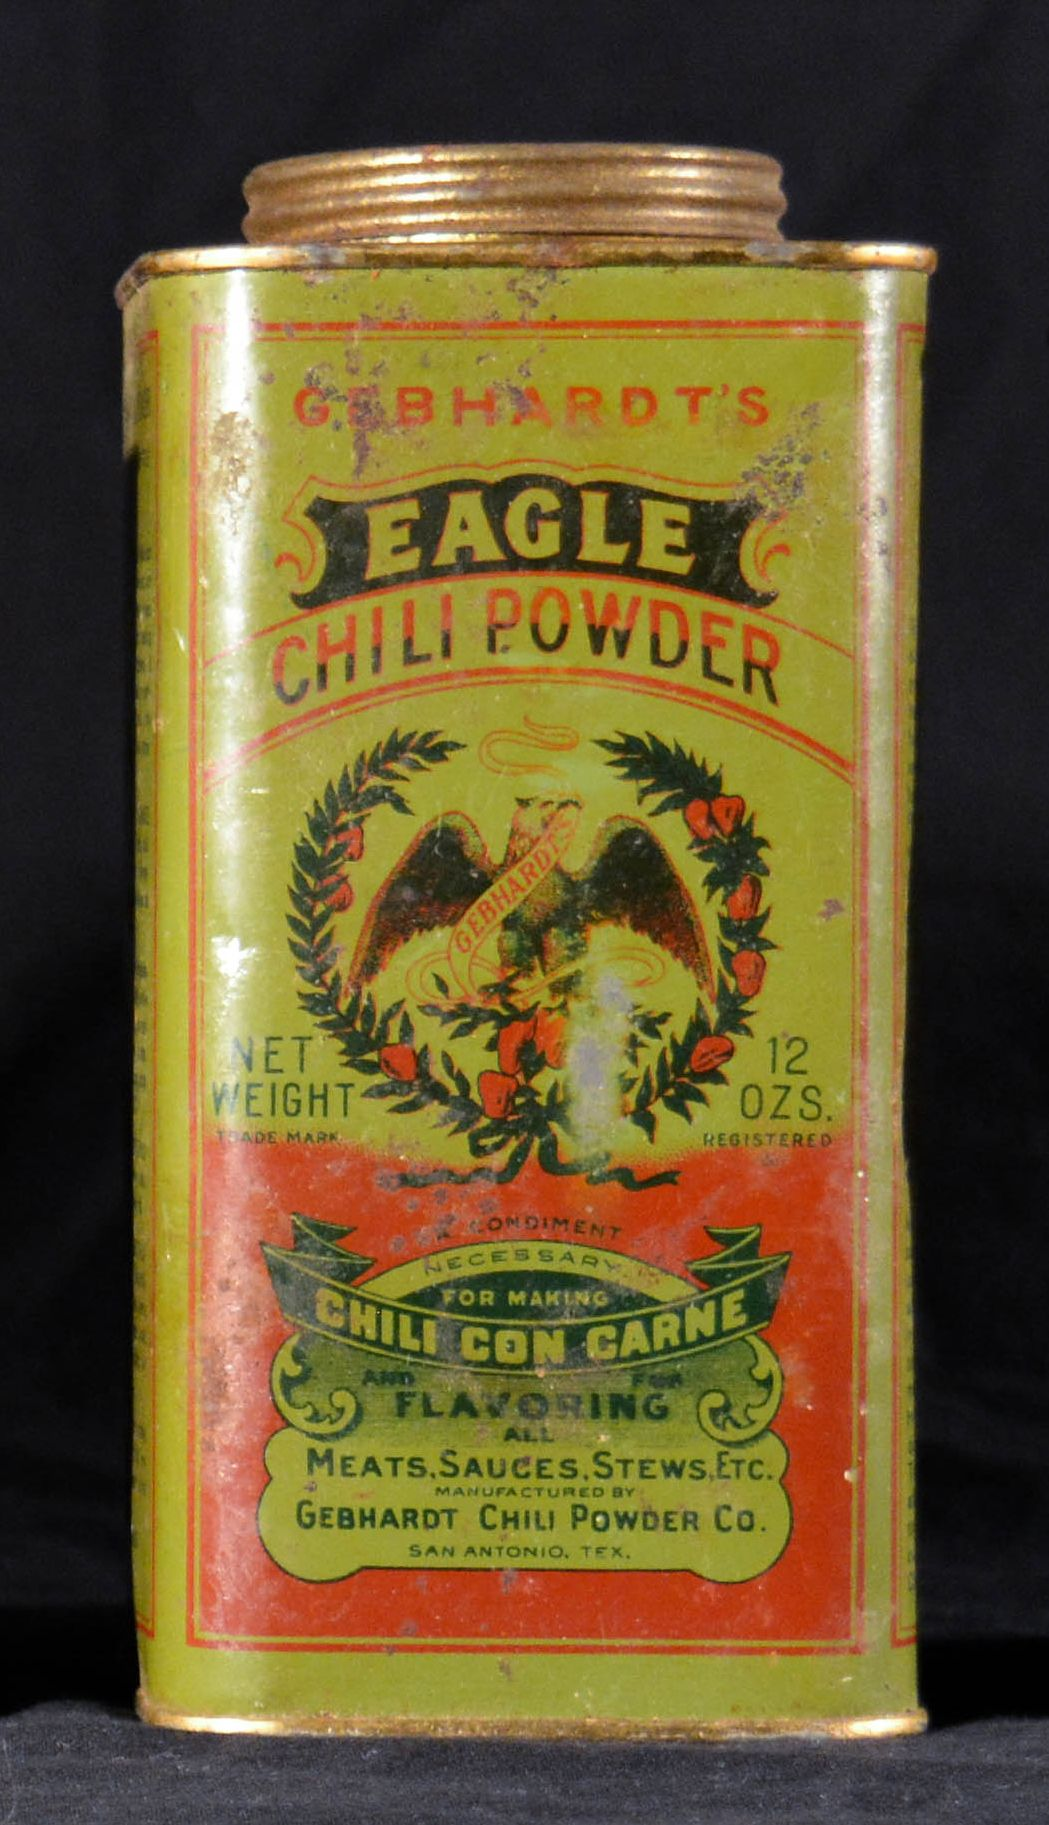 Vintage Gebhardt S Chili Powder 12 Oz Tin Antique 1930 S Era All Metal Spice Tin Includes 3 Recipes Printed On Side Spice Tins Antiques Old Spice